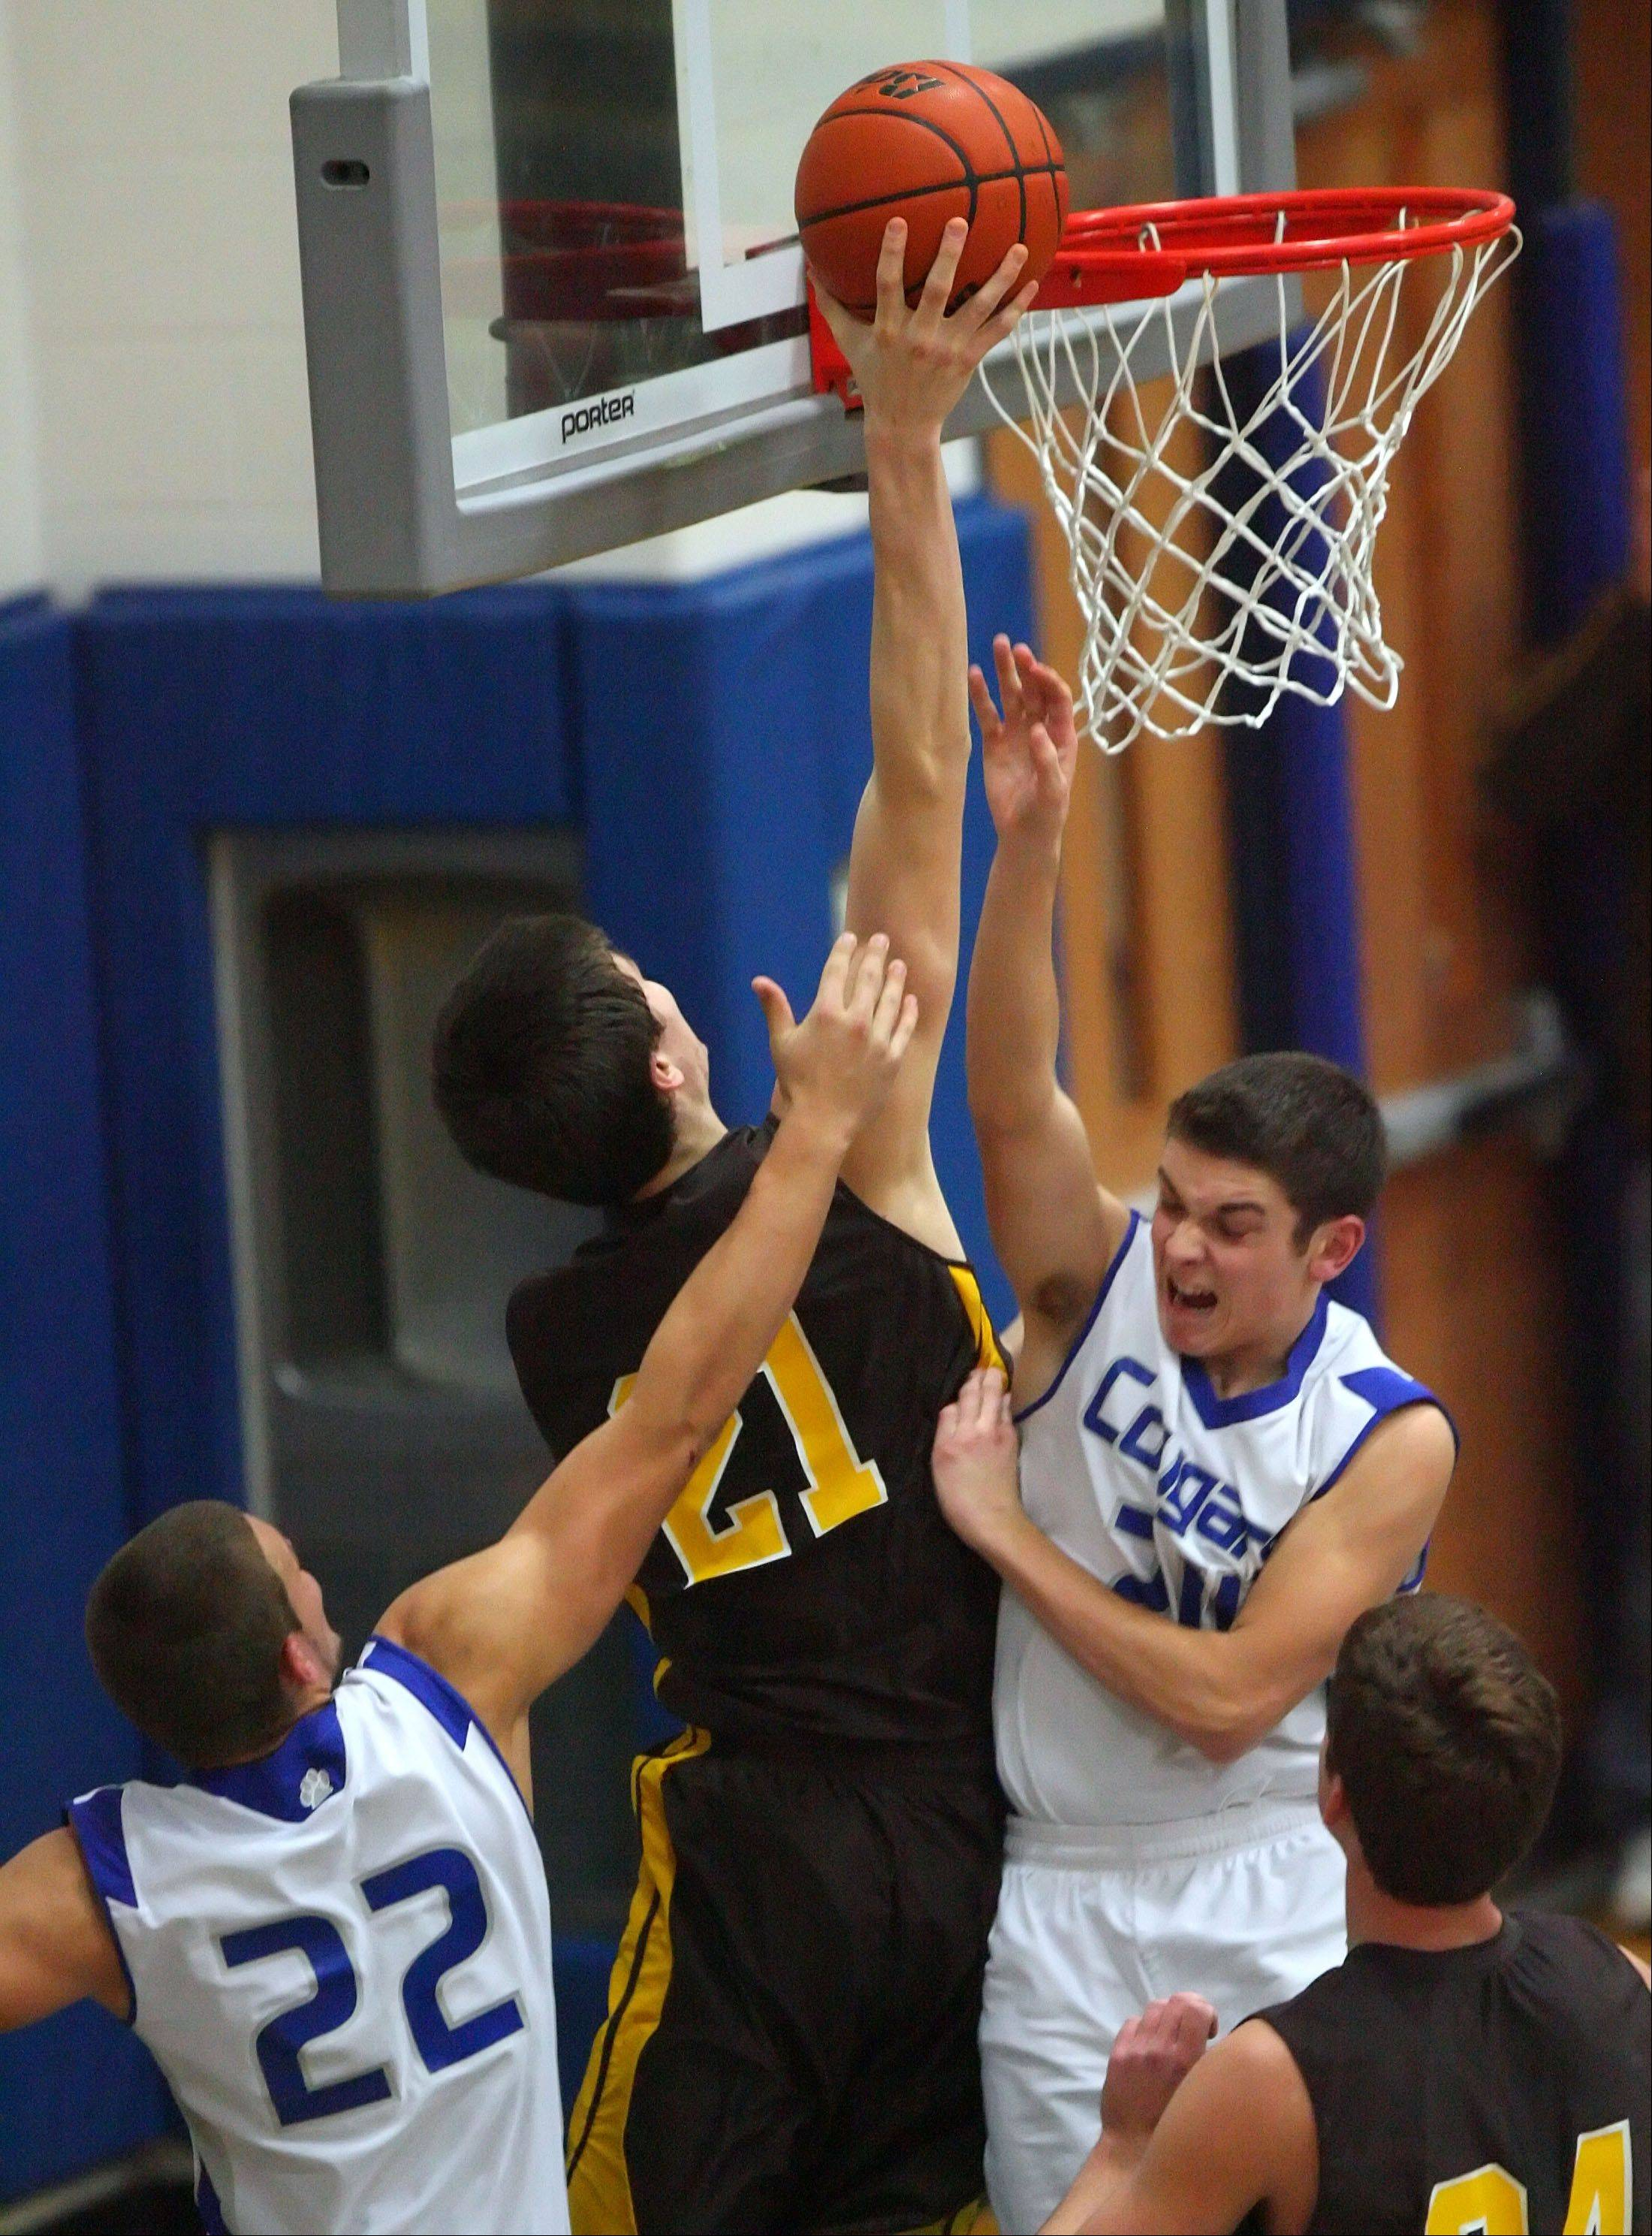 Carmel's Jack George, center, drives to the hoop past Vernon Hills' TJ Flis, left and Michael Mariella .